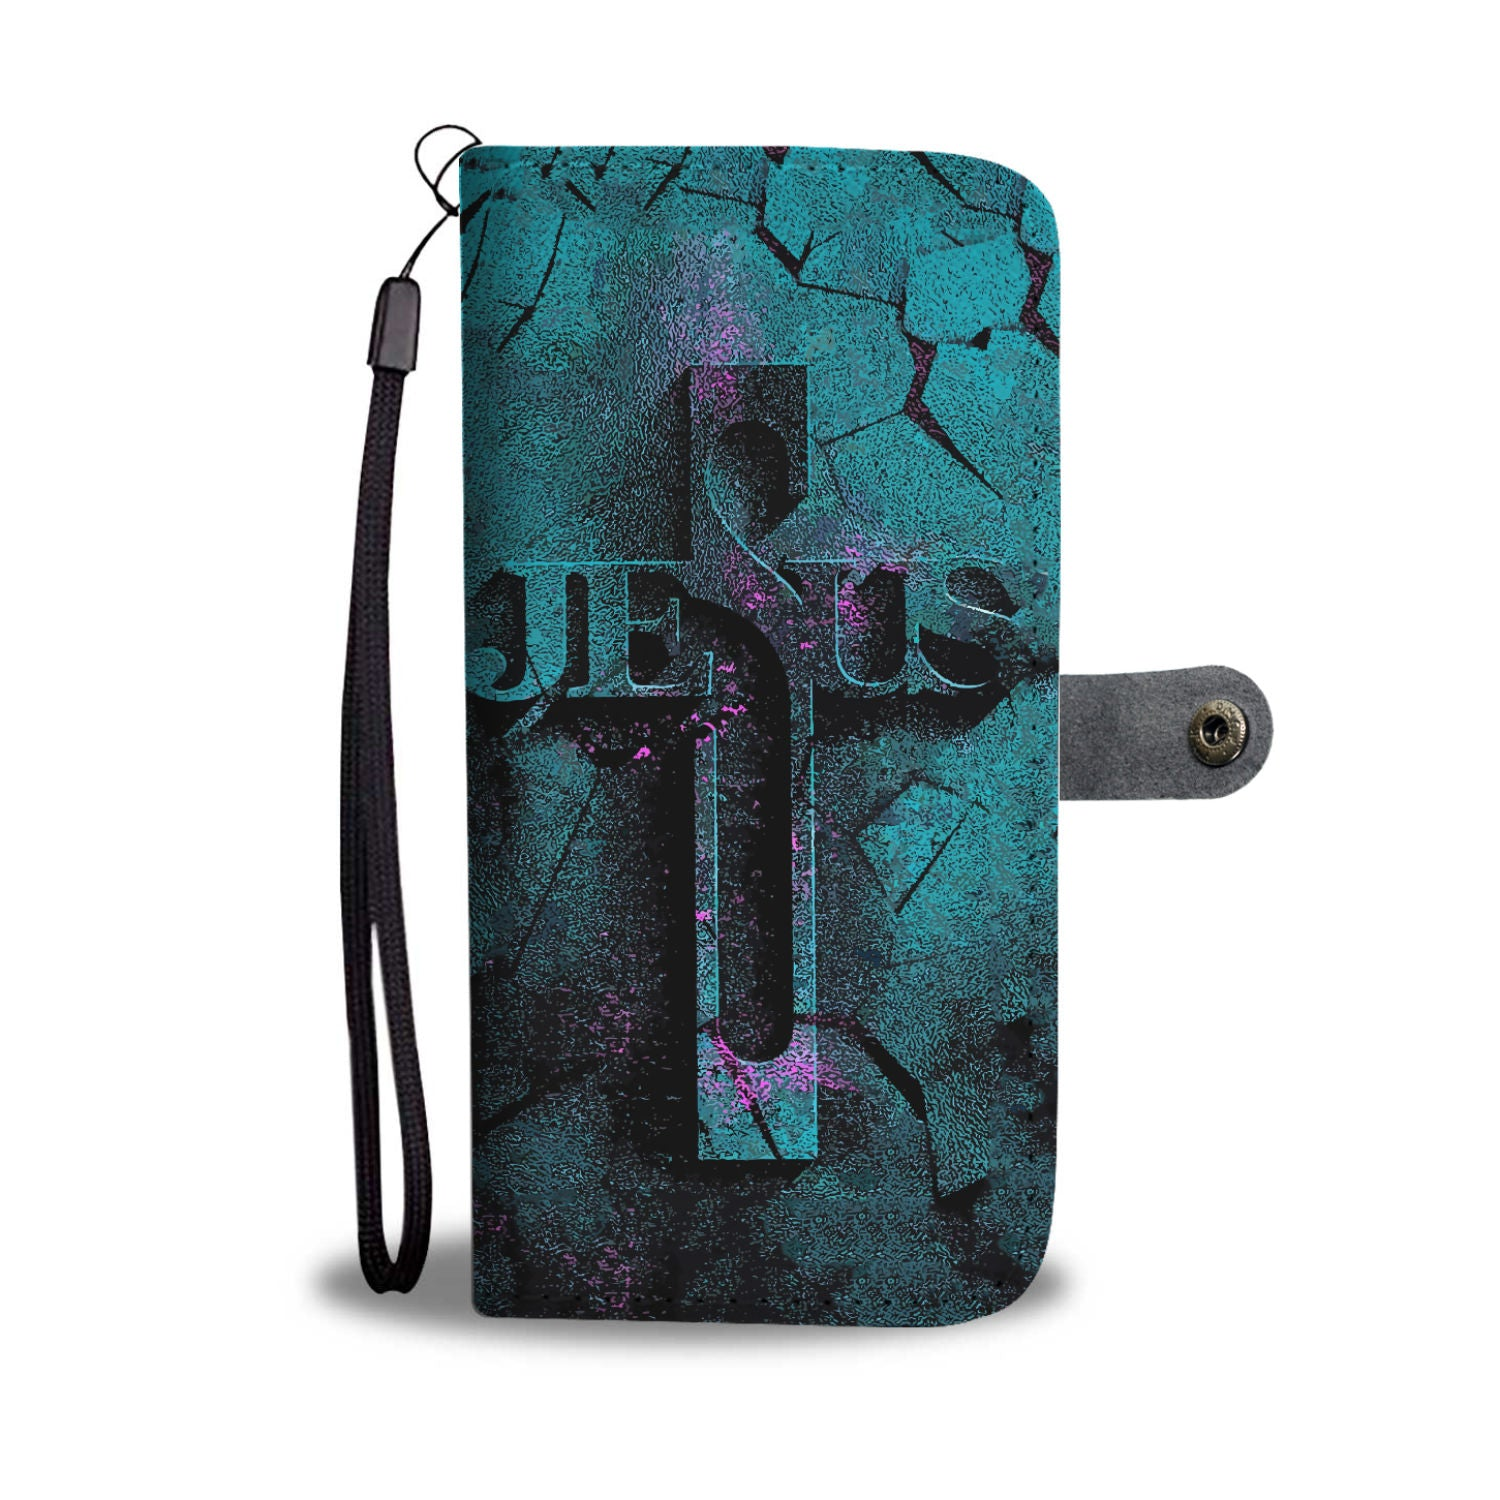 VIRA Awesome Wallet Case For Jesus Lovers